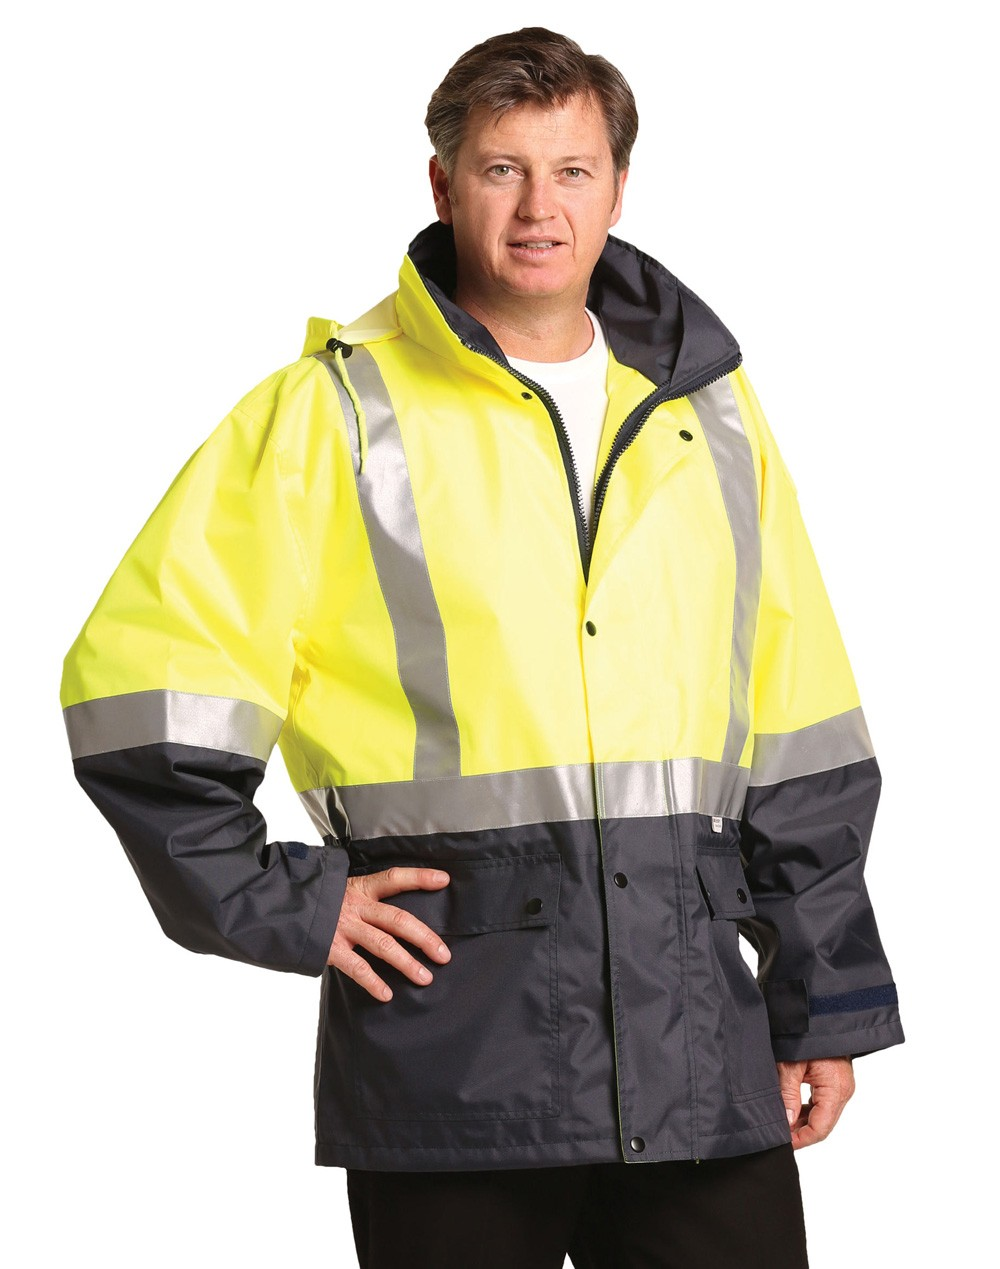 Winning Spirit Hi-Vis Two Tone Rain Proof Safety Jacket With Mesh Lining and 3M Scotchlite Reflective